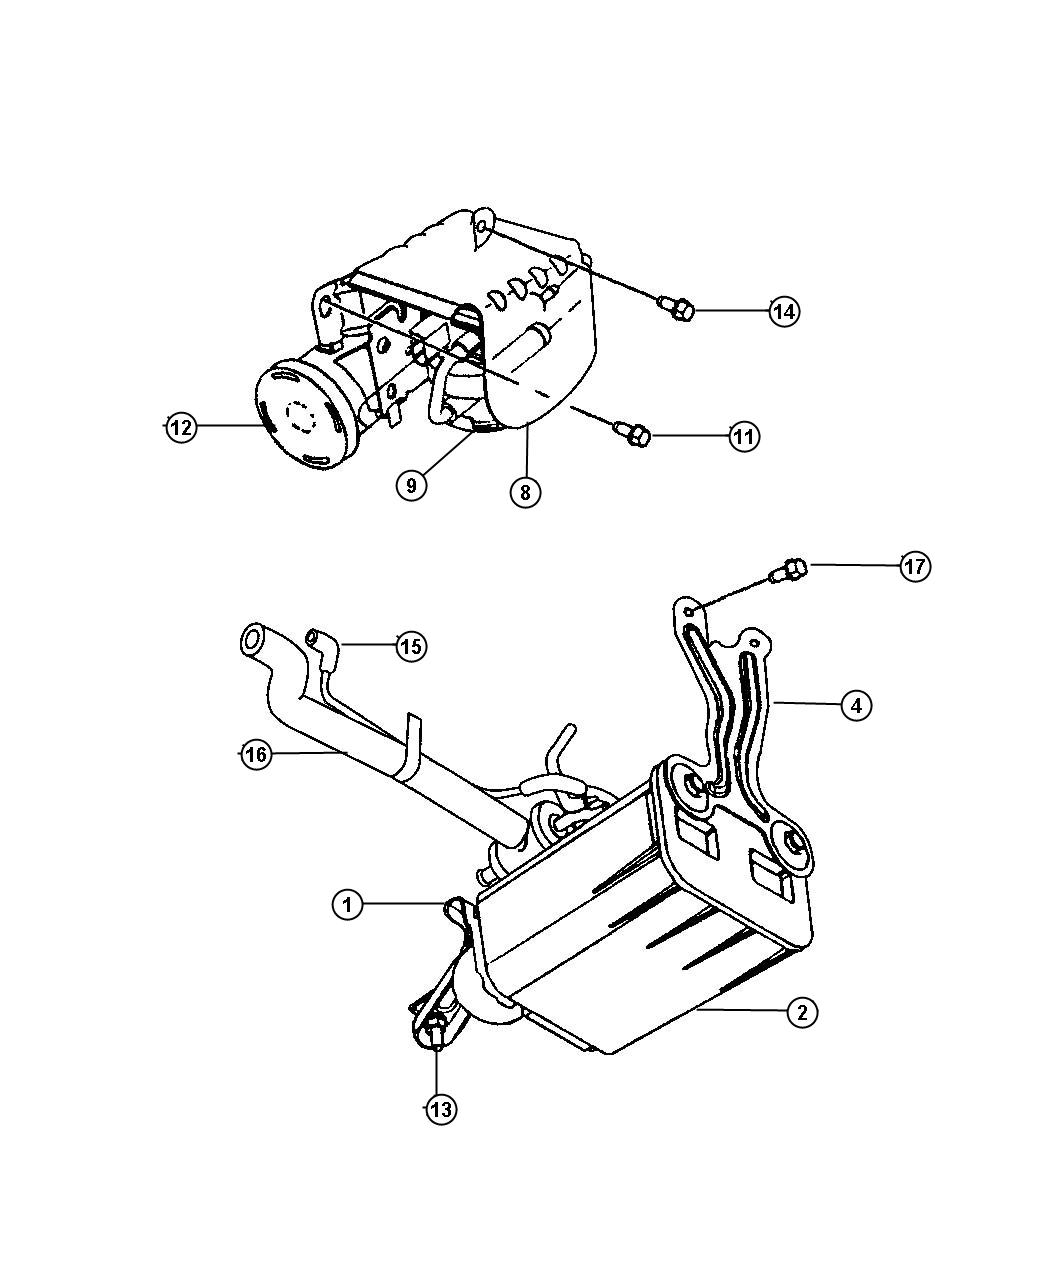 2000 dodge neon horn wiring diagram ford taurus stereo location get free image about